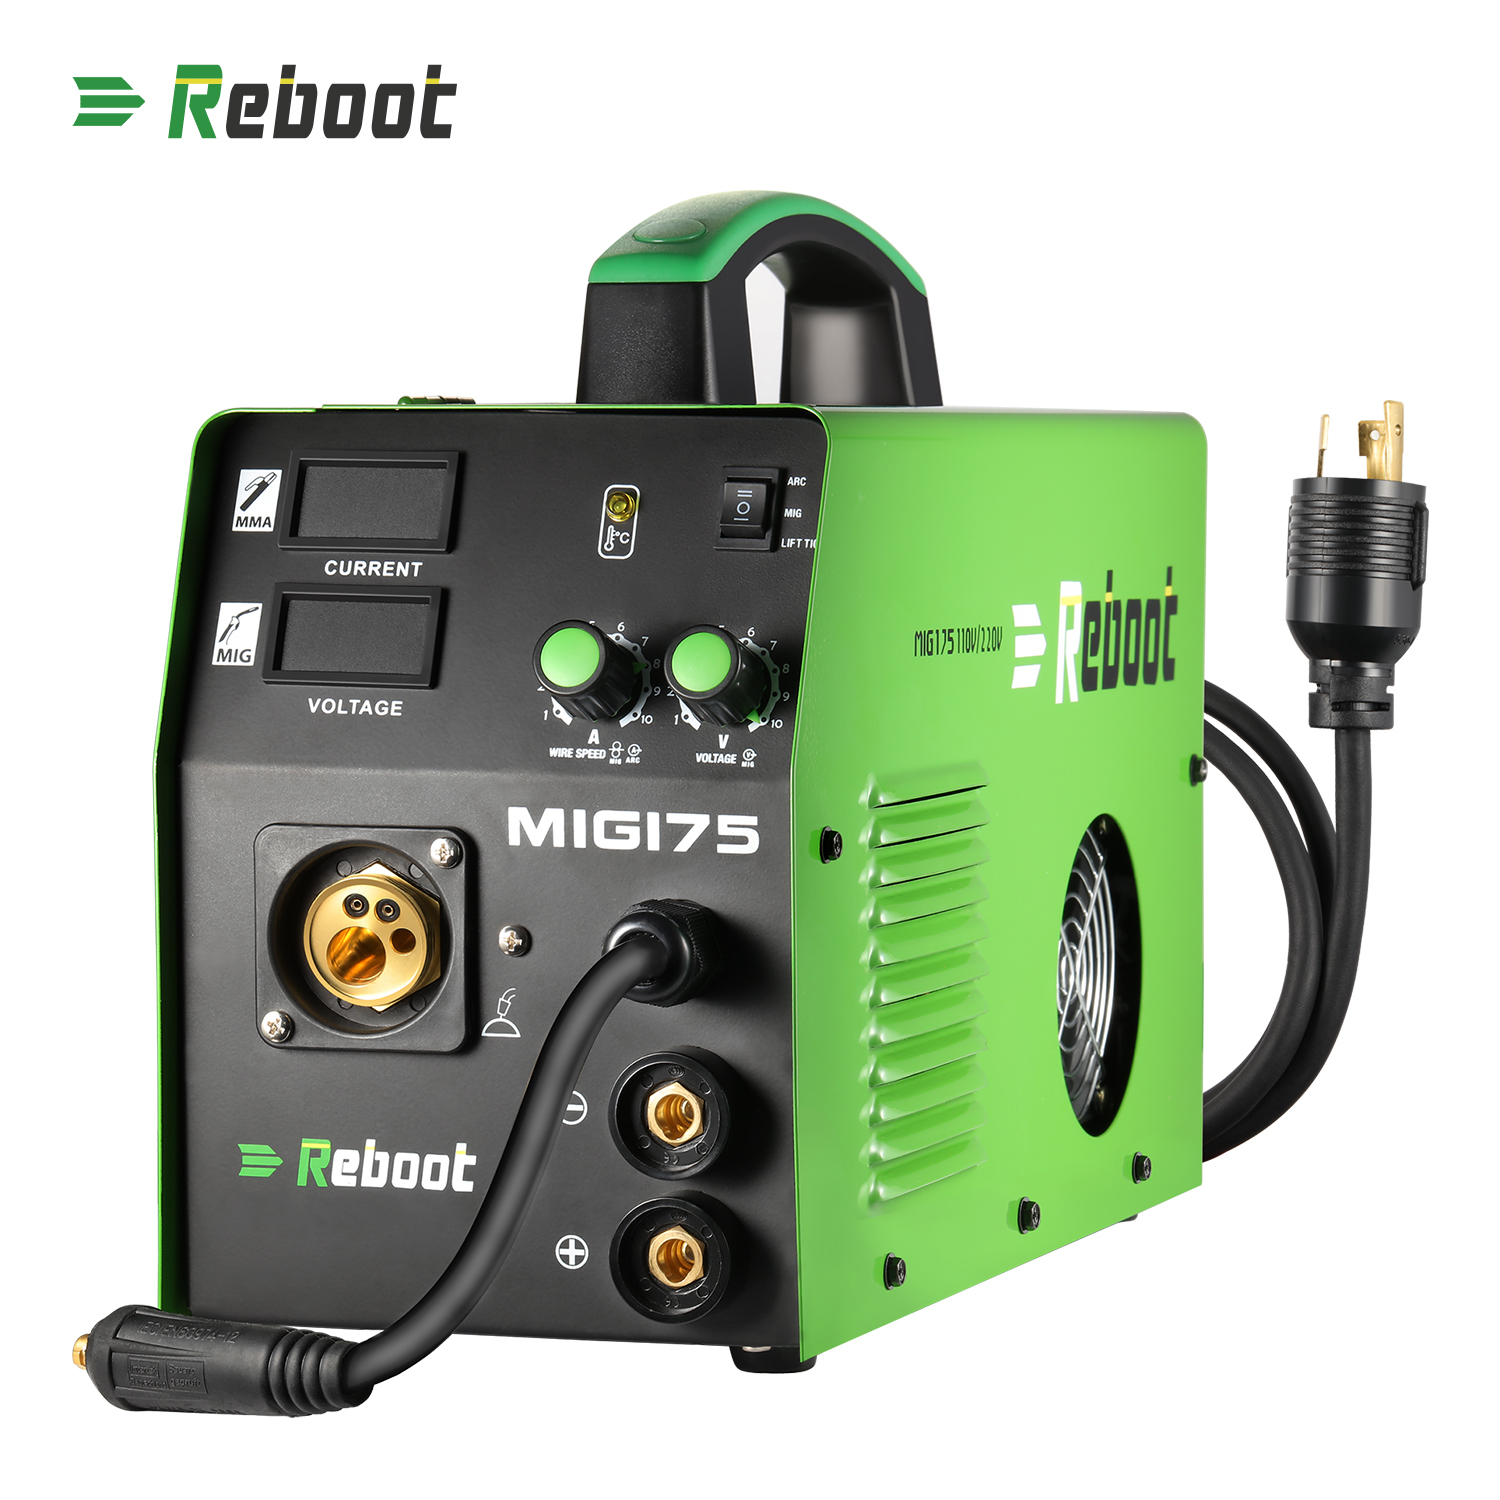 Reboot MMA MAG MIG Welder MIG175 Flux Core Wire And Solid Wire IGBT Inverter Welding Machine  Euro Plug  Gas Gasless 5KG